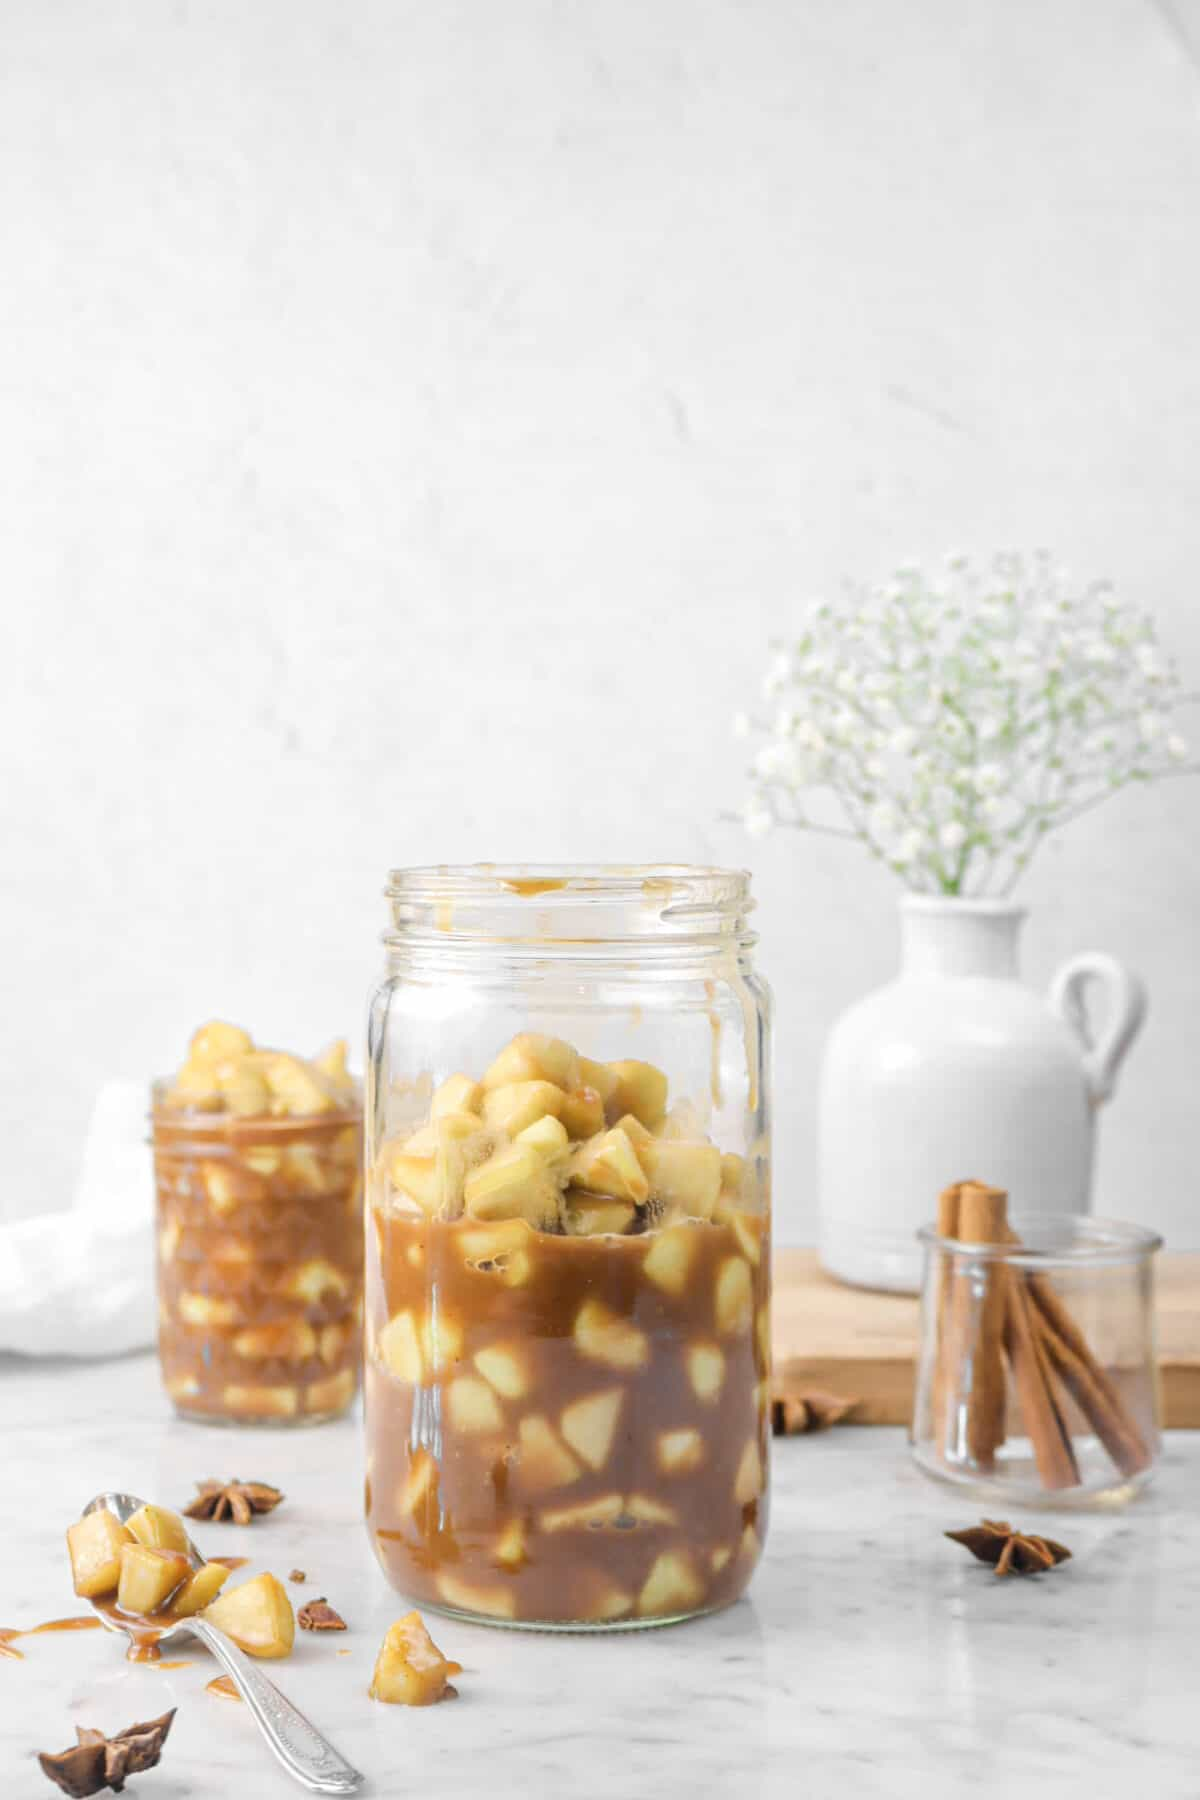 pie filling in a glass jar with spices, a spoon, and white flowers